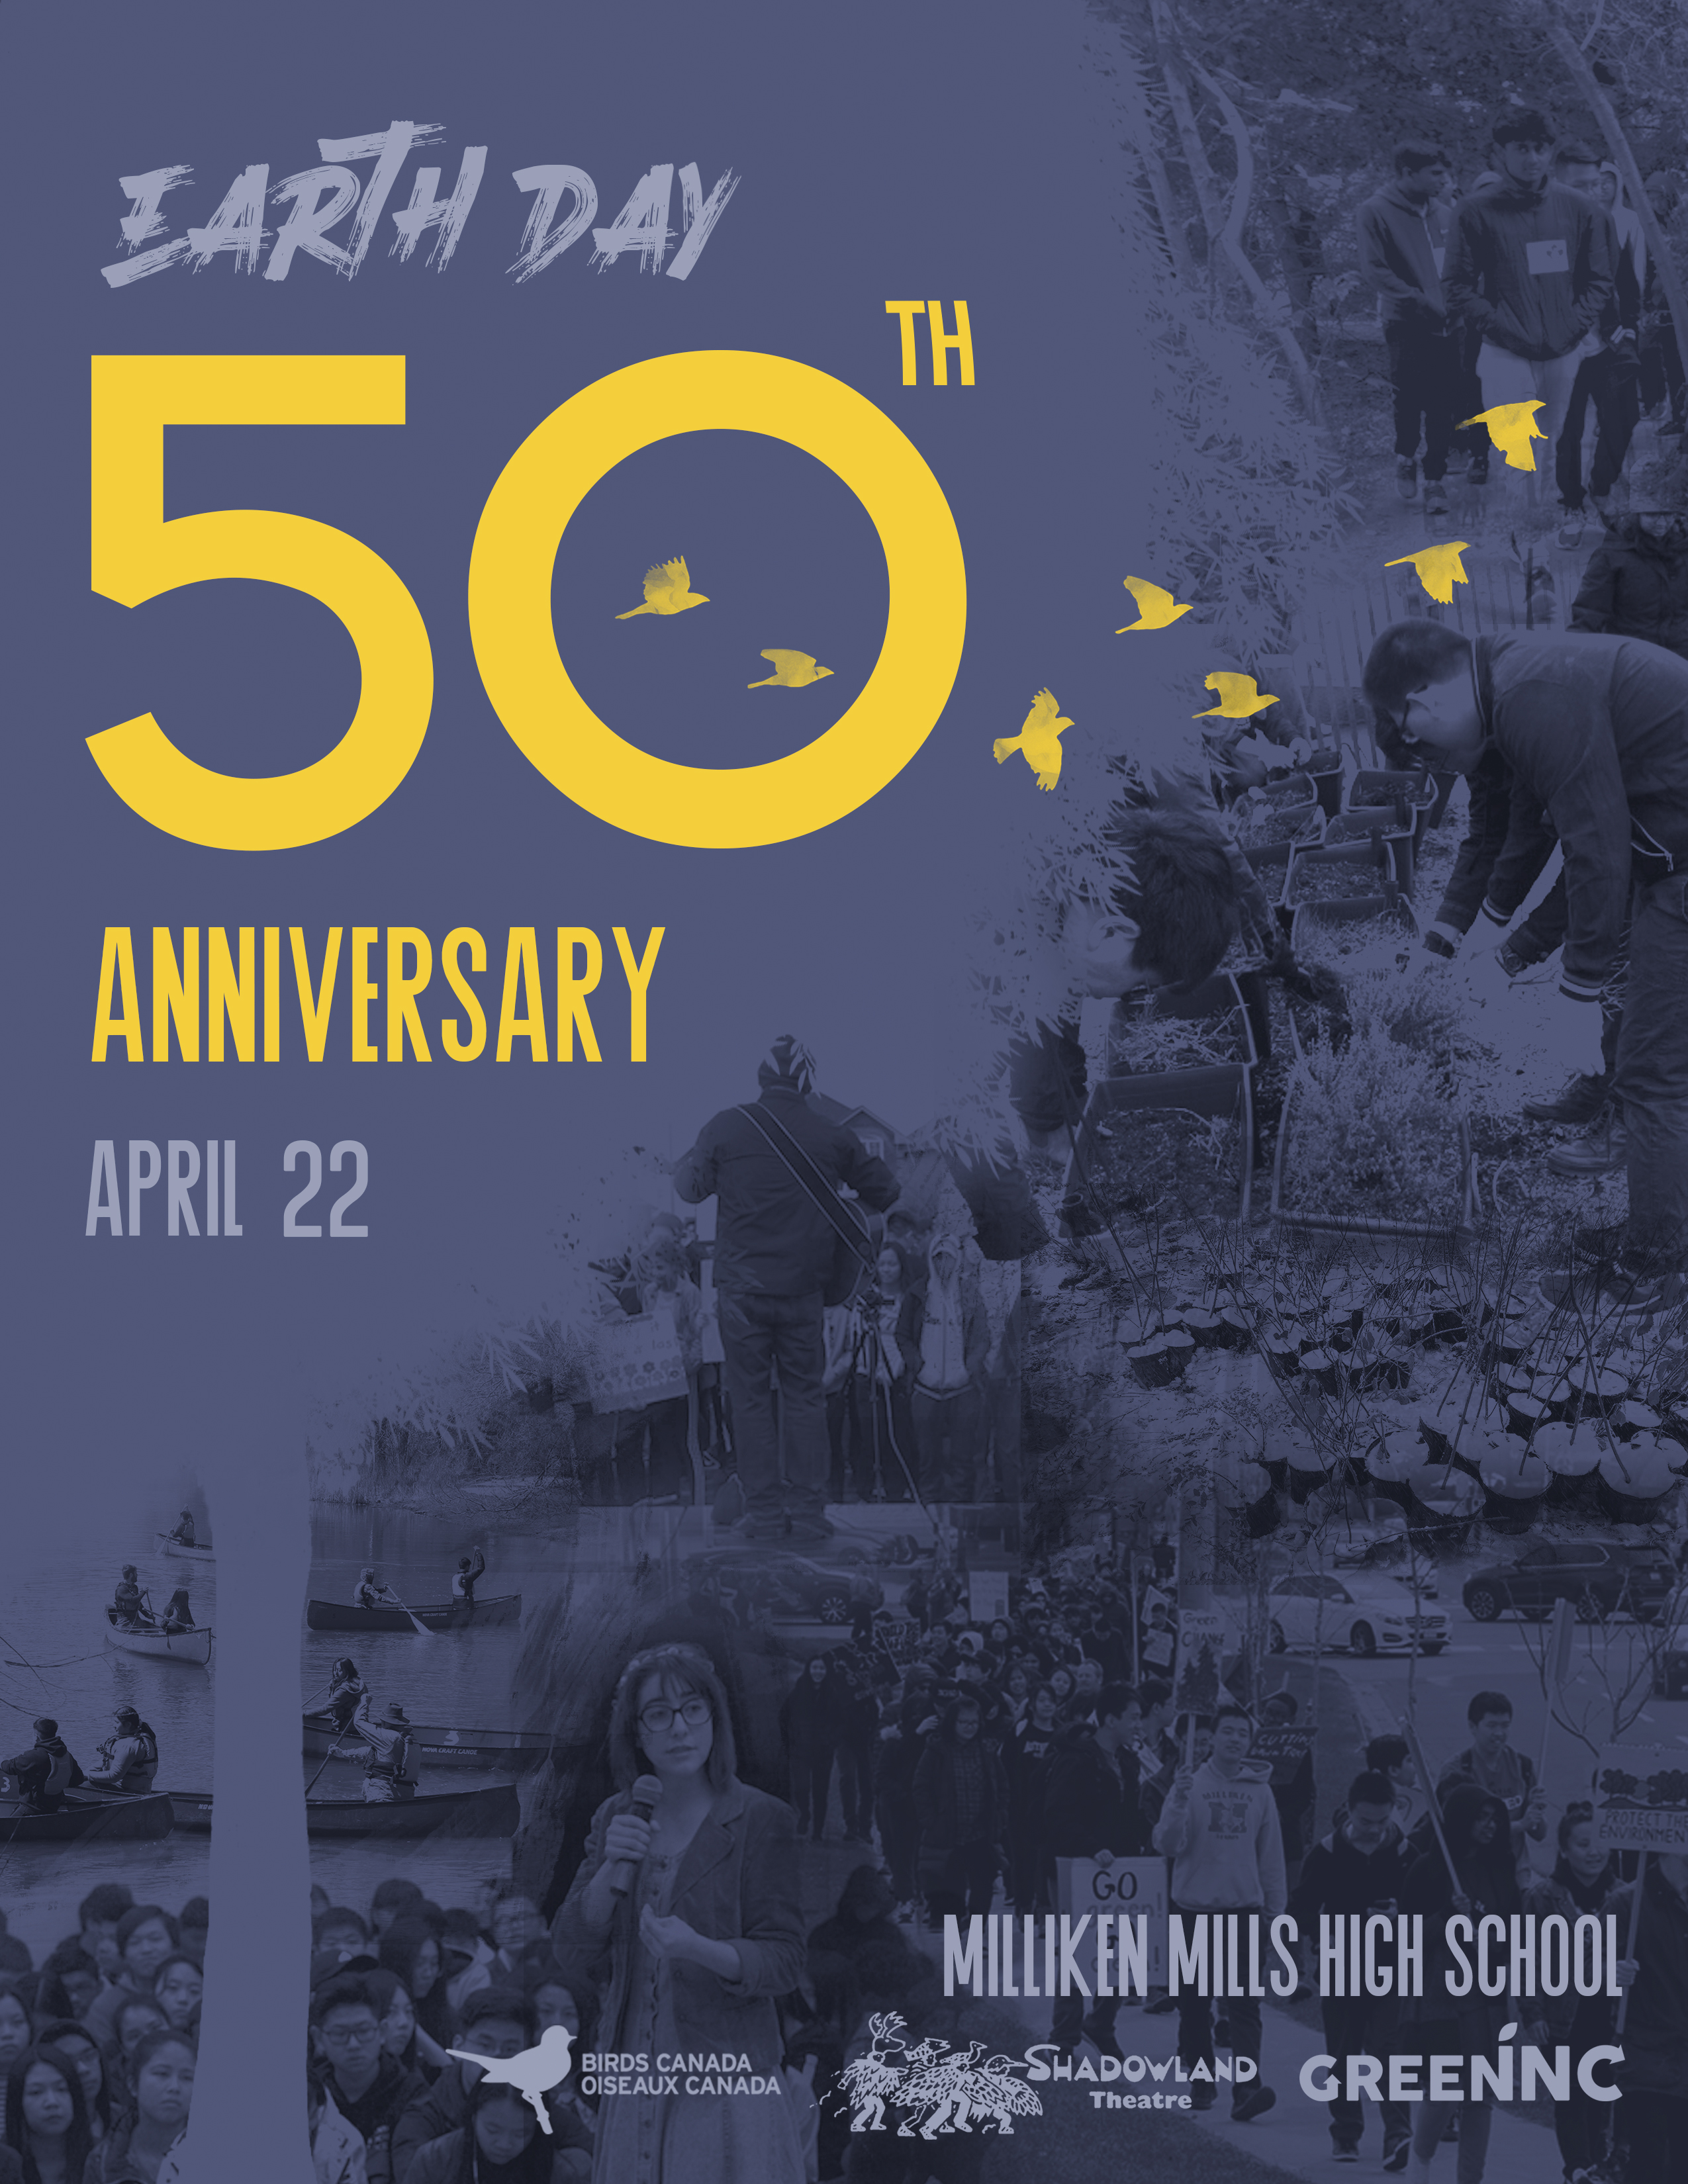 earth day 50th poster gray.jpg